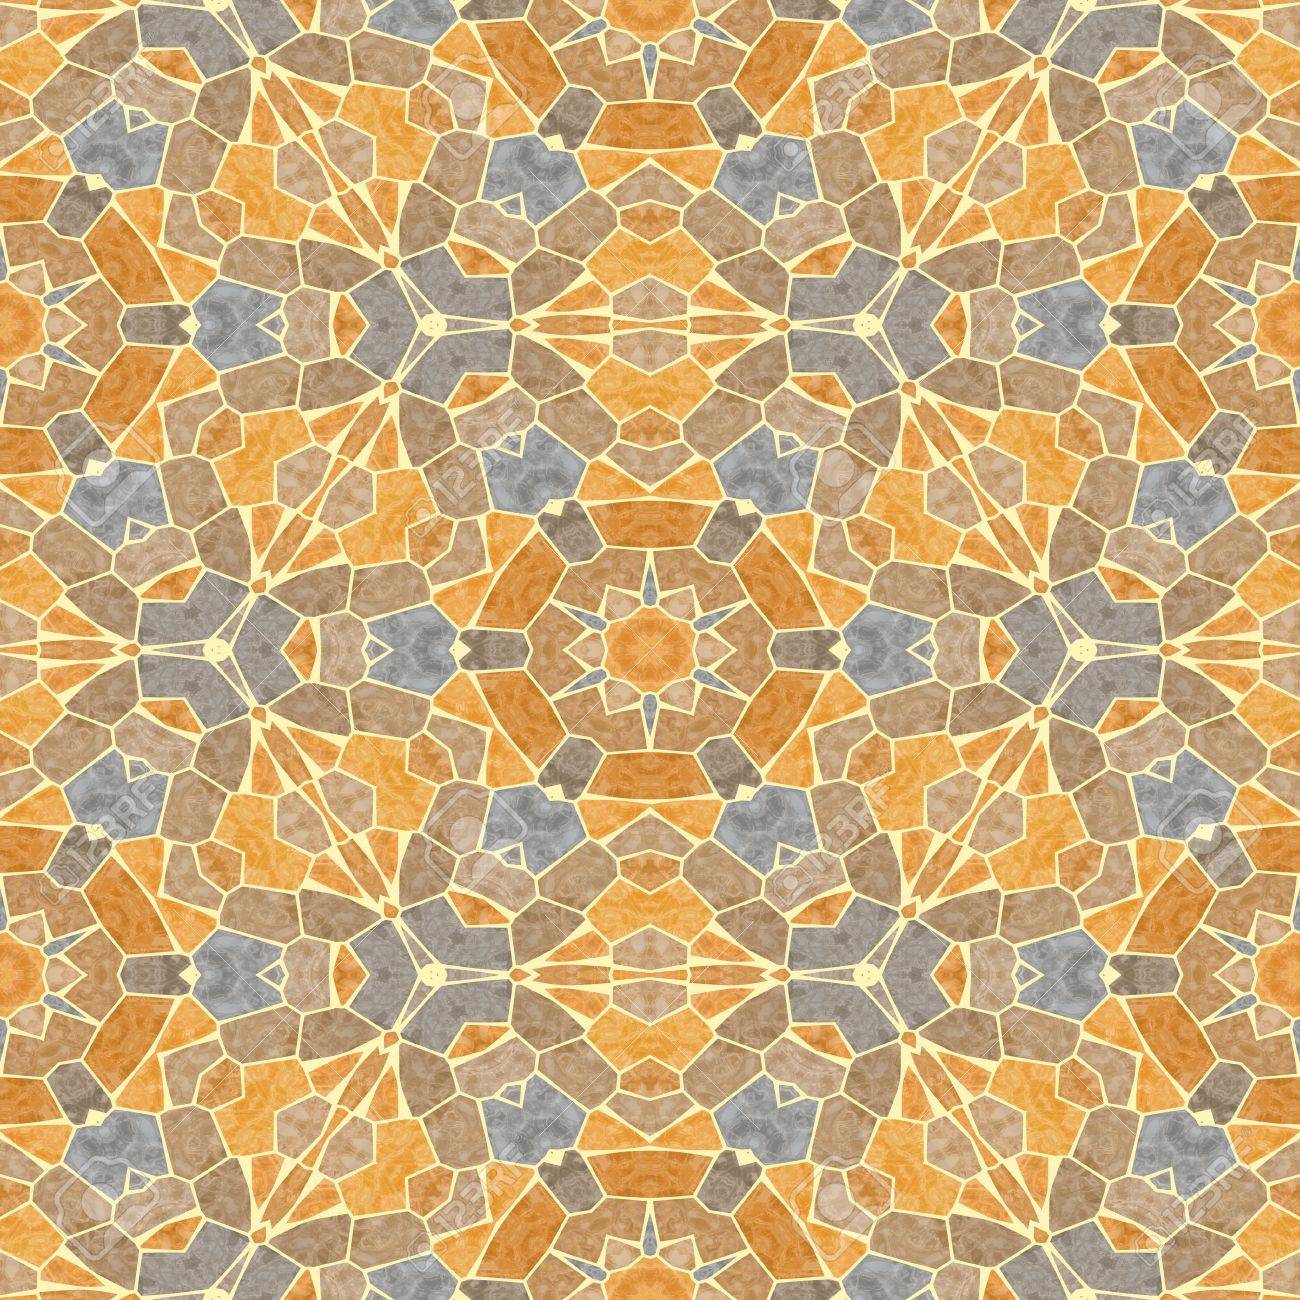 37479541-ancient-seamless-mosaic-tile-texture-in-tuscany-style.jpg